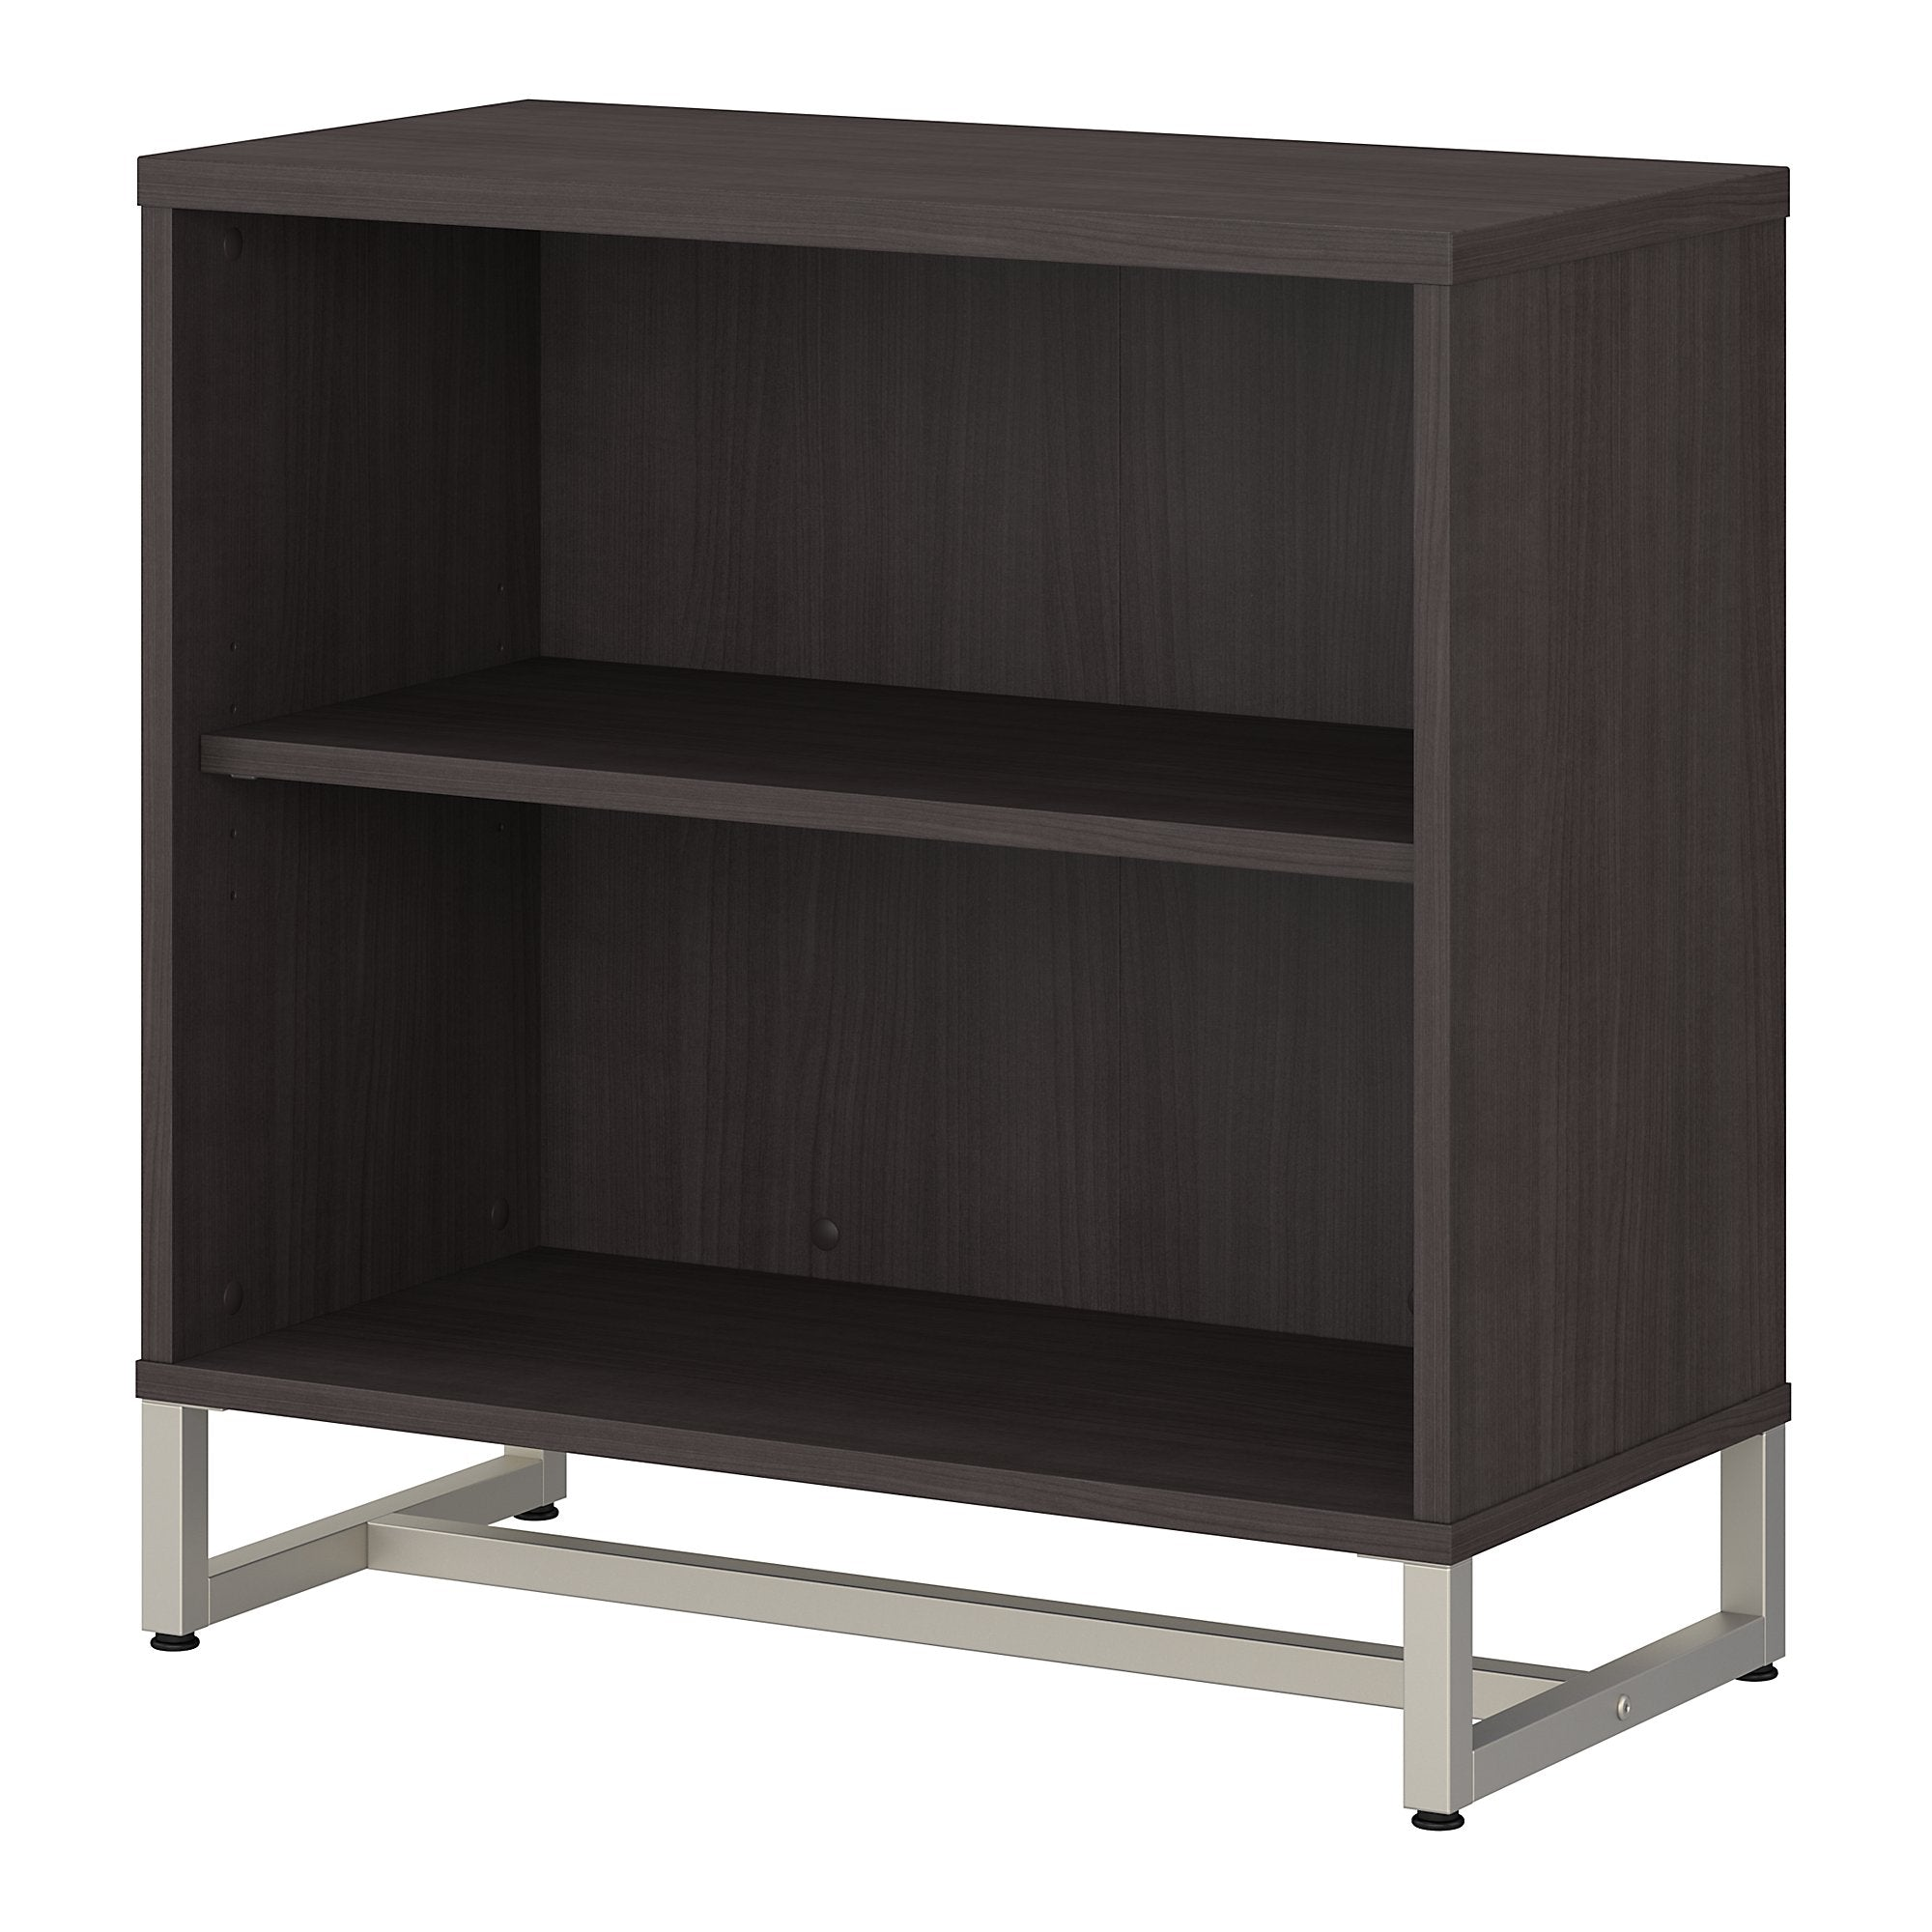 Office by kathy ireland® Method 2 Shelf Bookcase Cabinet -Storm Gray